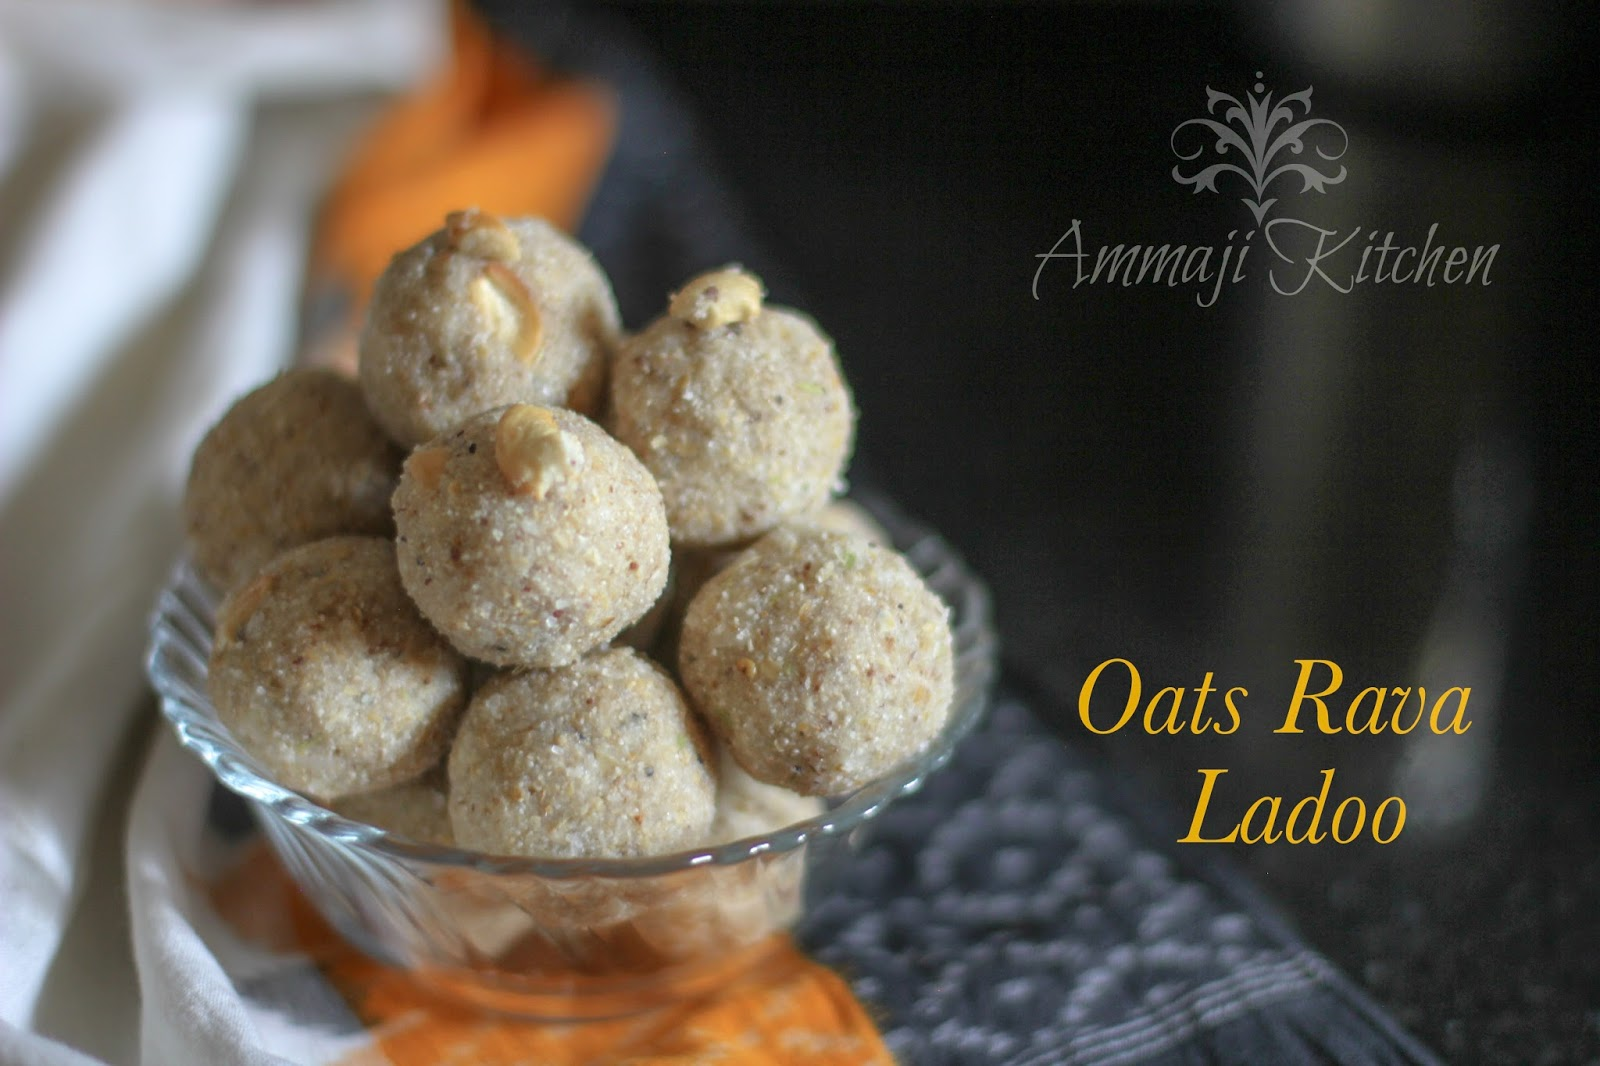 Oats rava ladoo recipe how to make oats rava ladoo indian food oats rava ladoo recipe how to make oats rava ladoo forumfinder Gallery